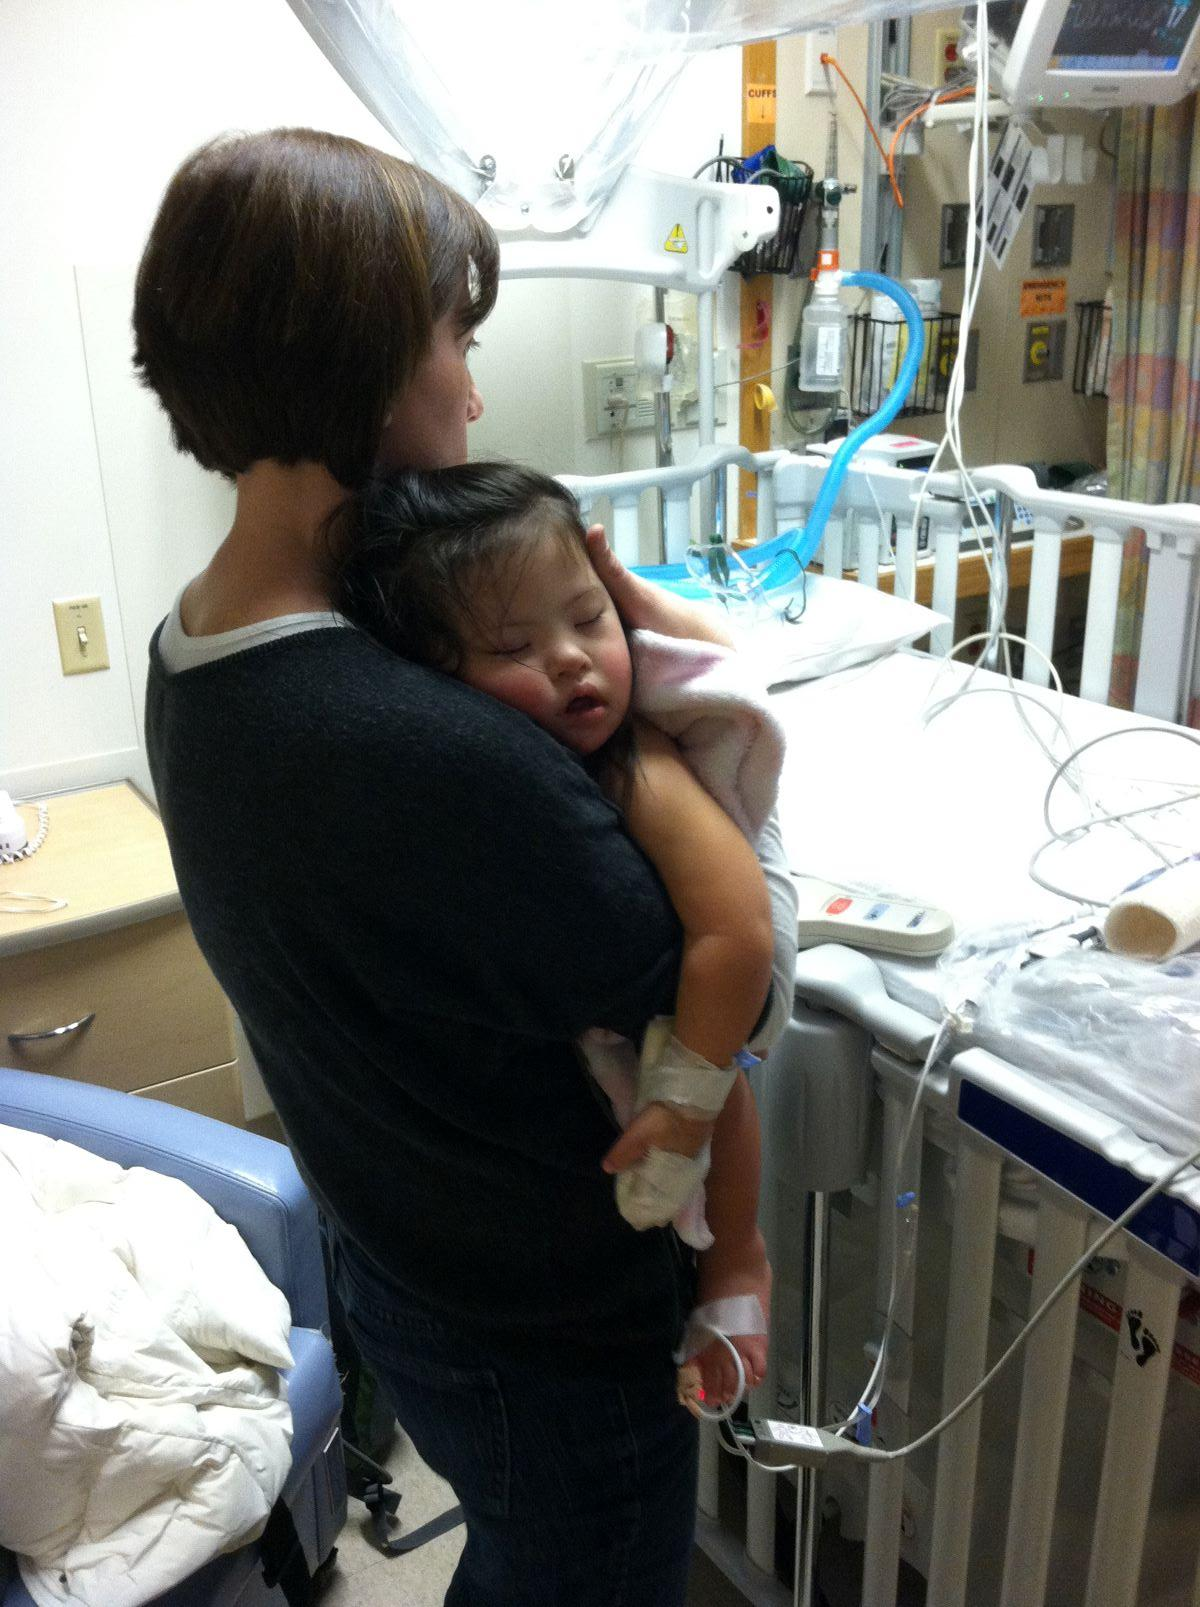 mother holding baby in hospital room